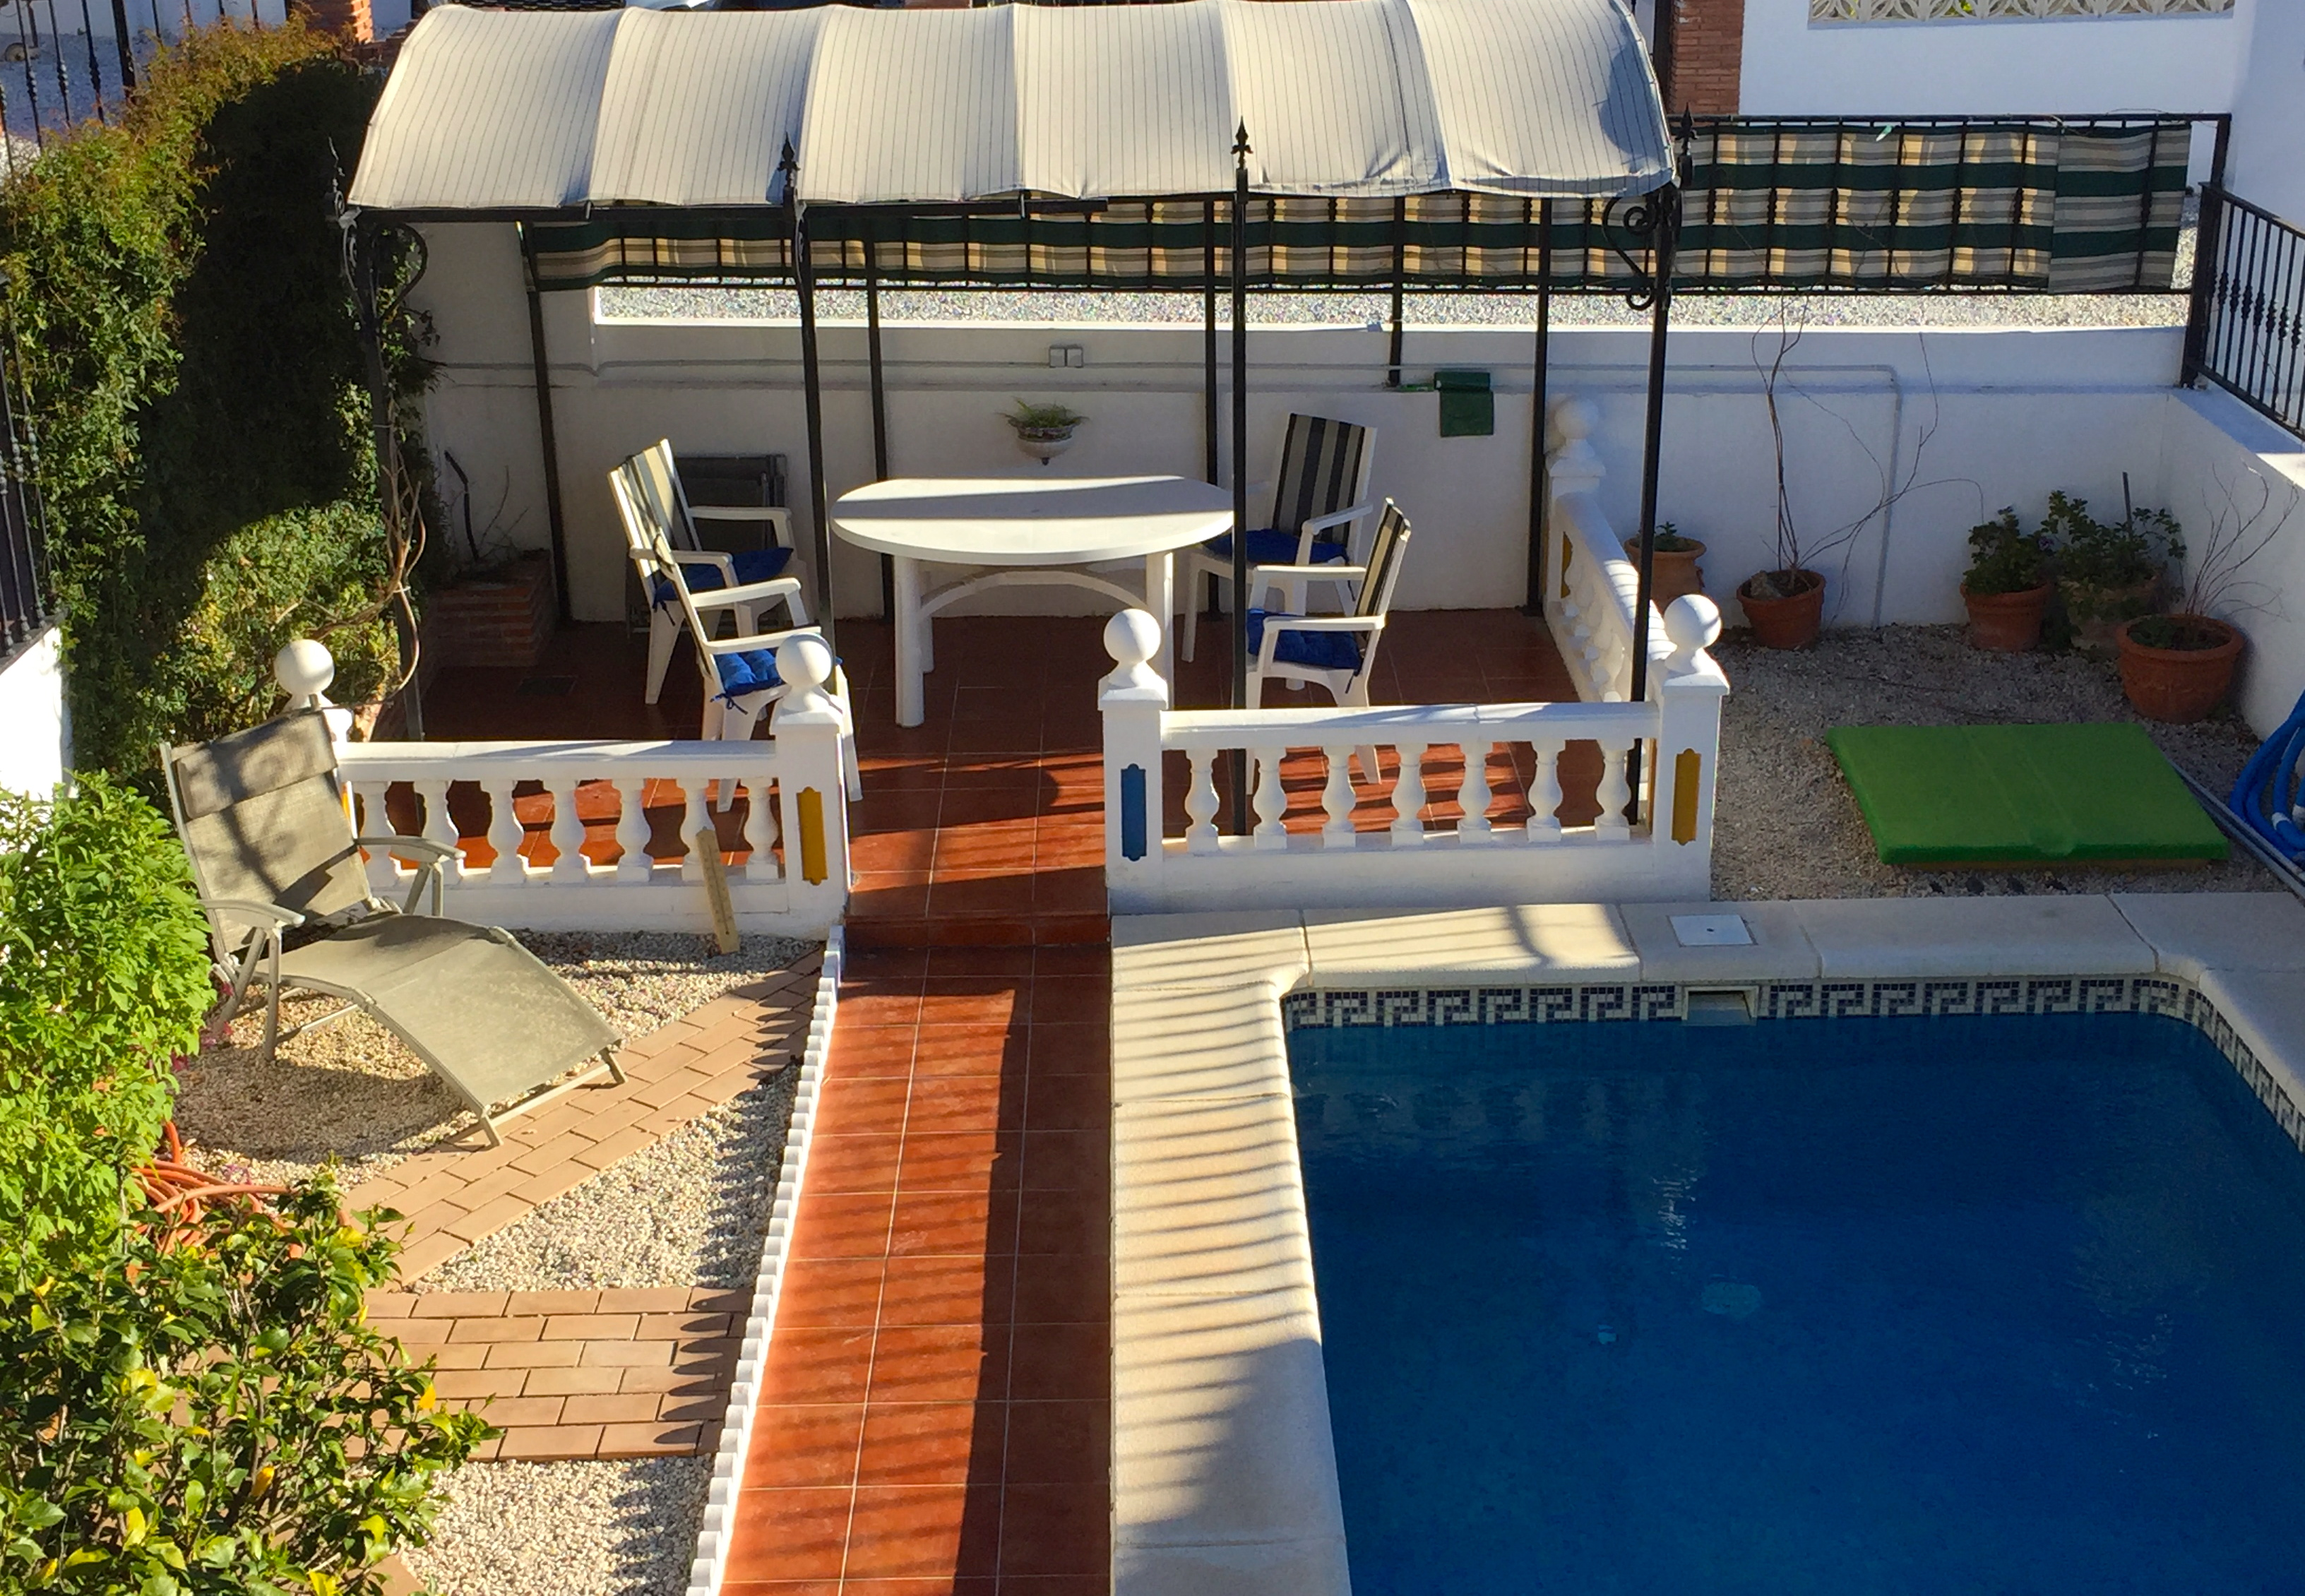 El Escondite, eclectic property in Puente Don Manuel